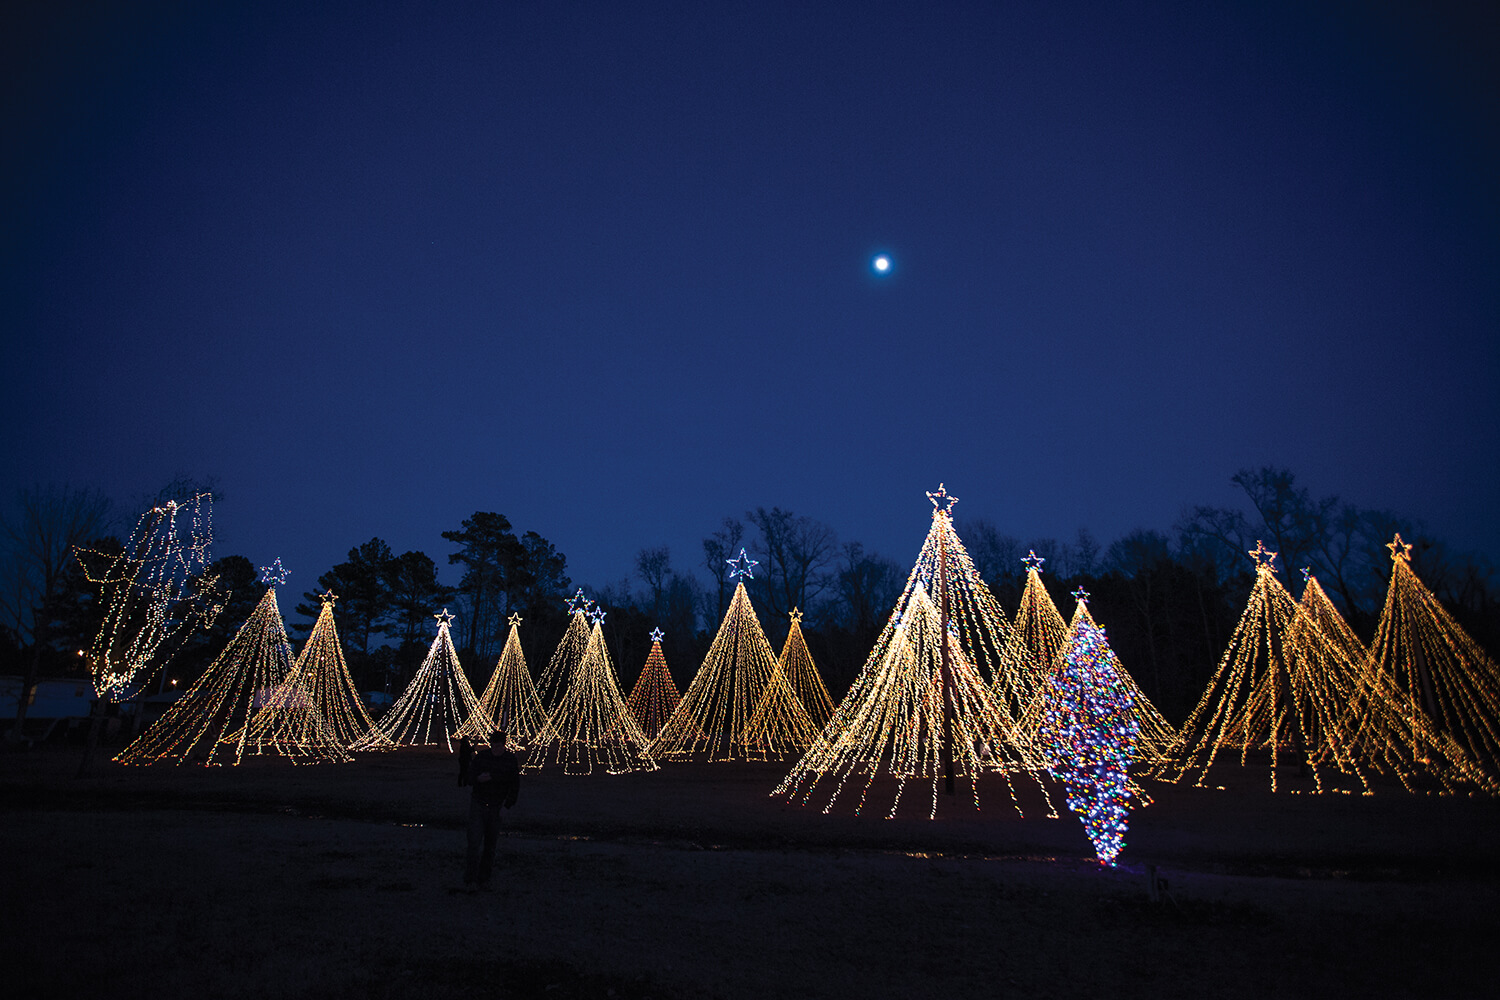 By day, they're just poles. But by night, the lights and stars turn them into Christmas trees.